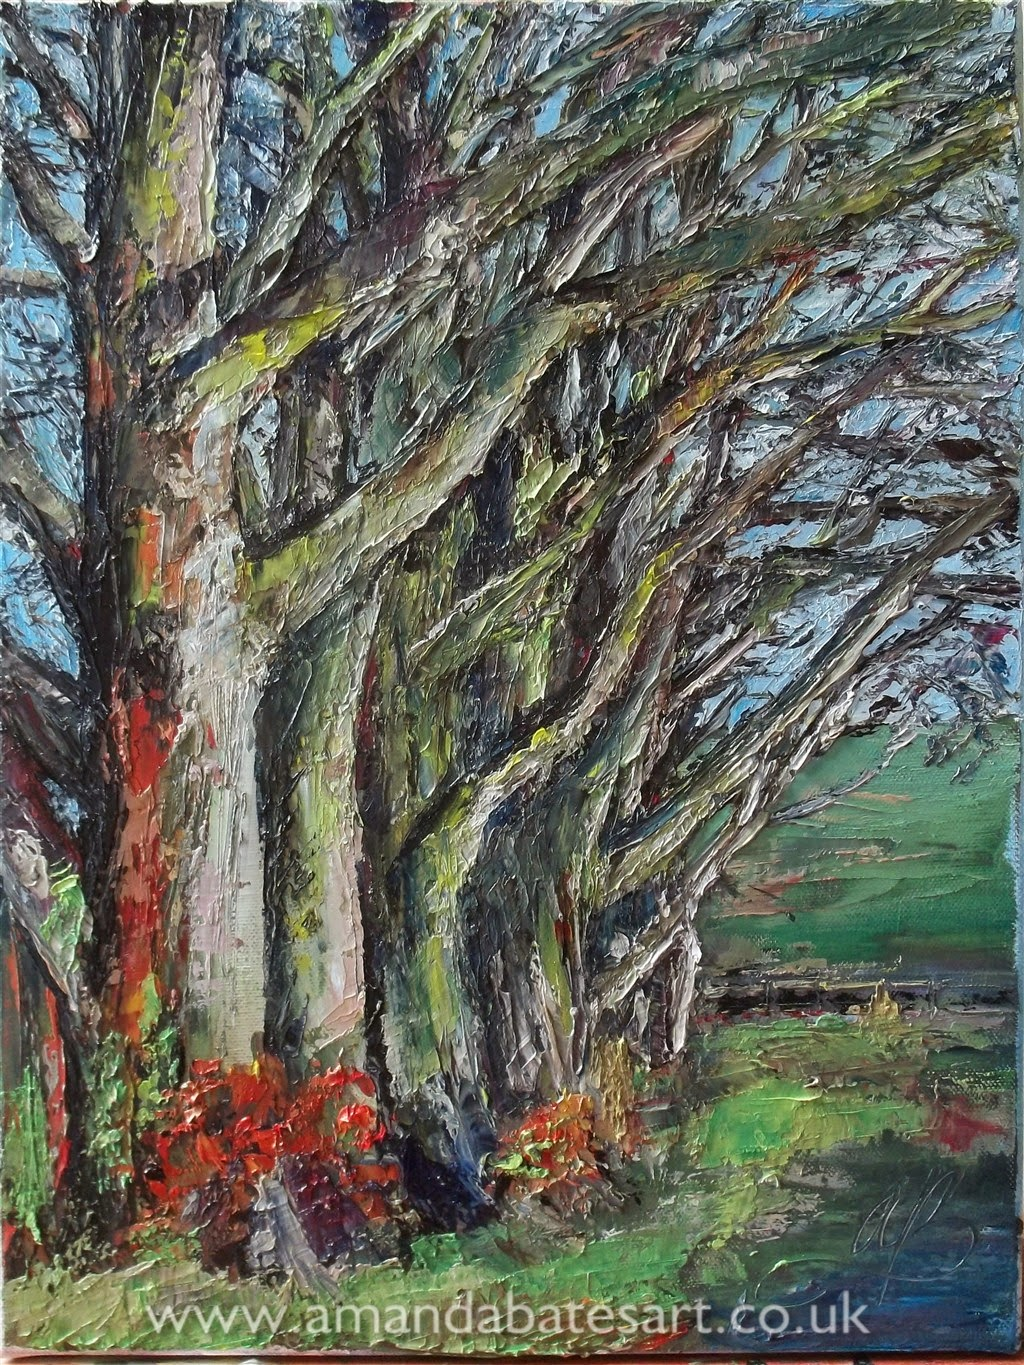 Impasto Oil painting of The Beeches, Litchfield Down, North Hampshire. Painted with a palette / painting knife by landscape artist Amanda Bates of Kingsclere